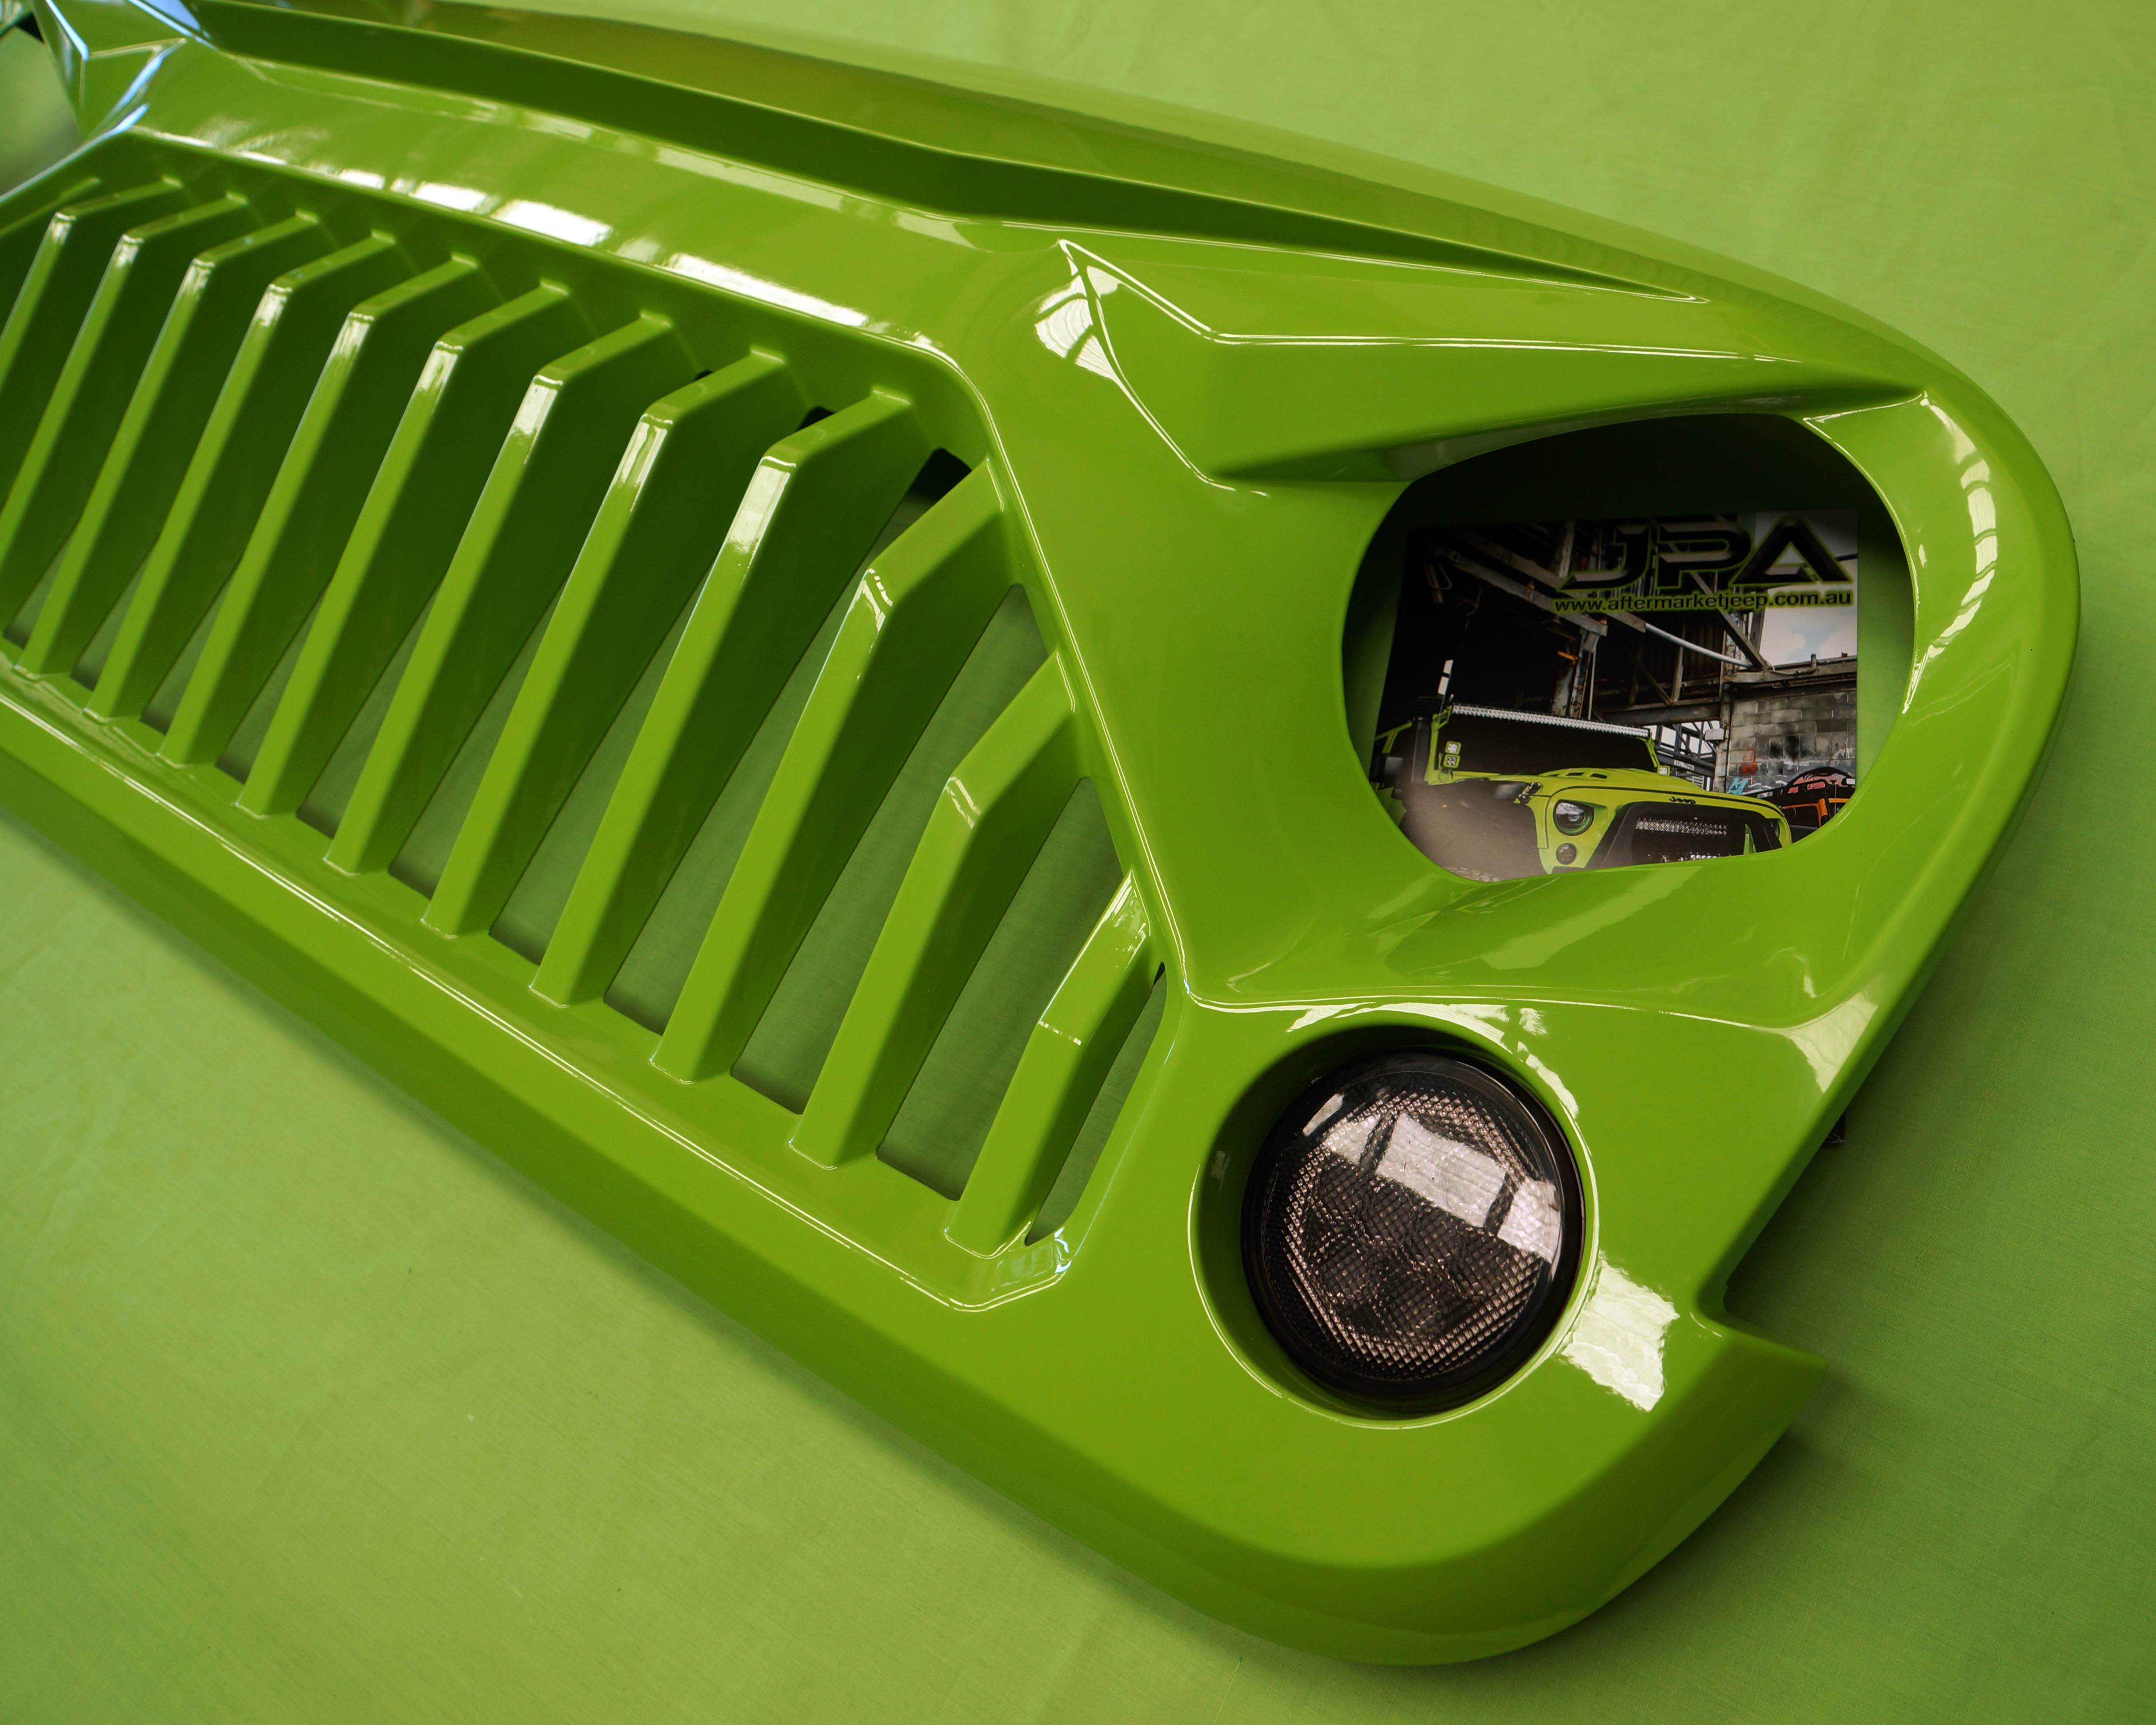 Jeep Wrangler Stormtrooper Angry Grill / Grille for JK ...